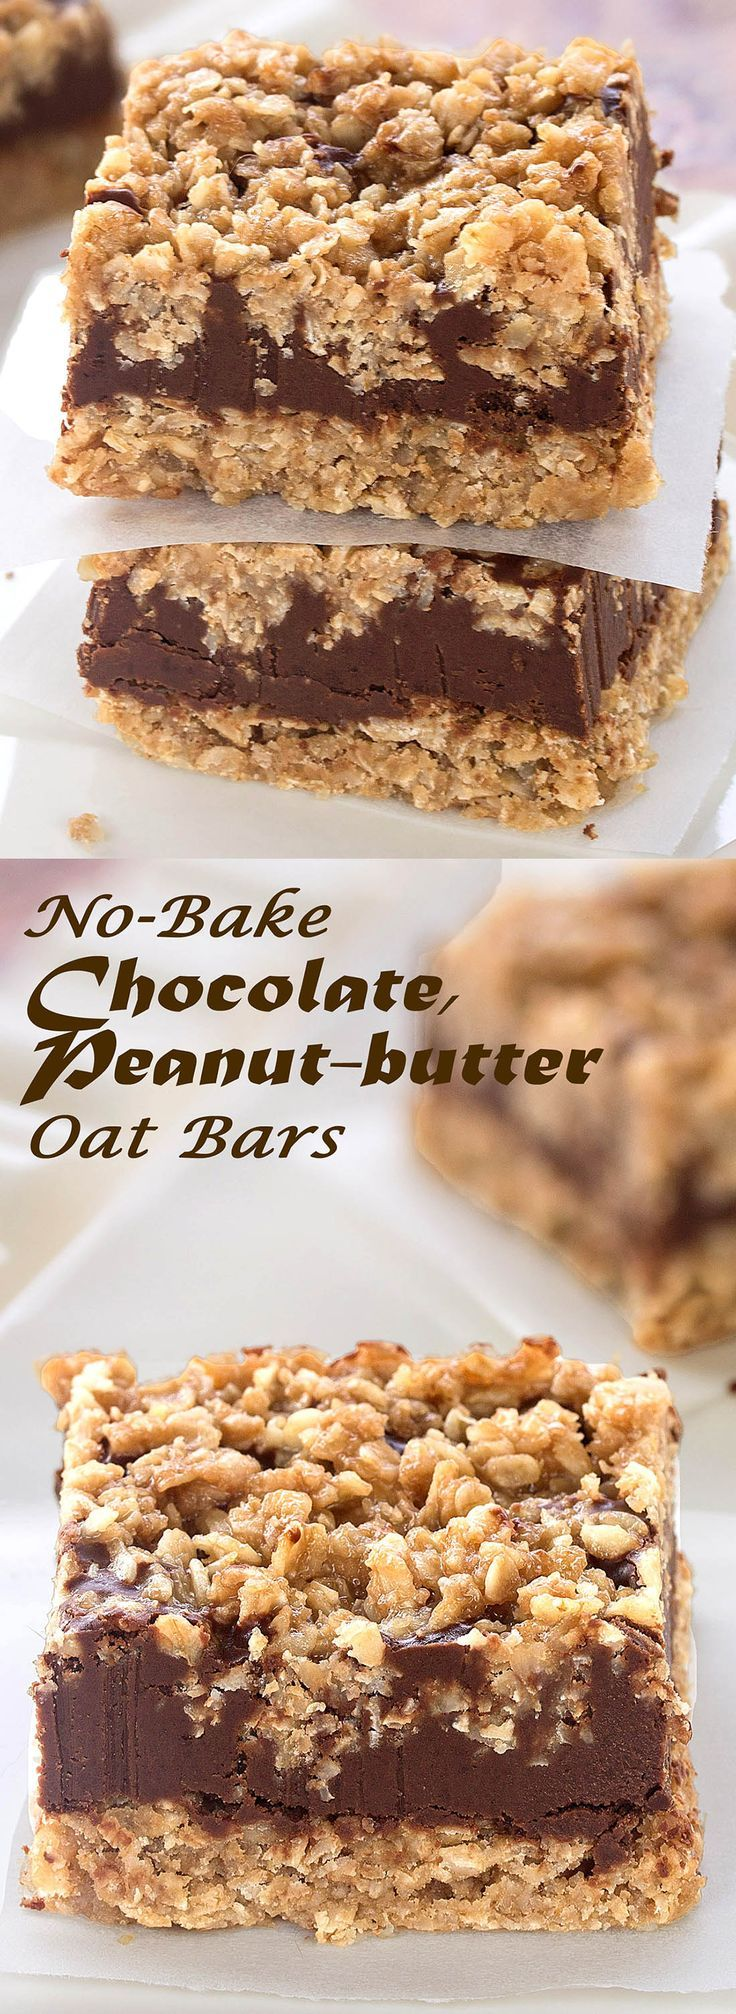 No-bake, egg-free, gluten-free Chocolate Peanut-butter Oat Bars These delicious bars are super easy-to-make.    Something Sweet - Winnie's blog